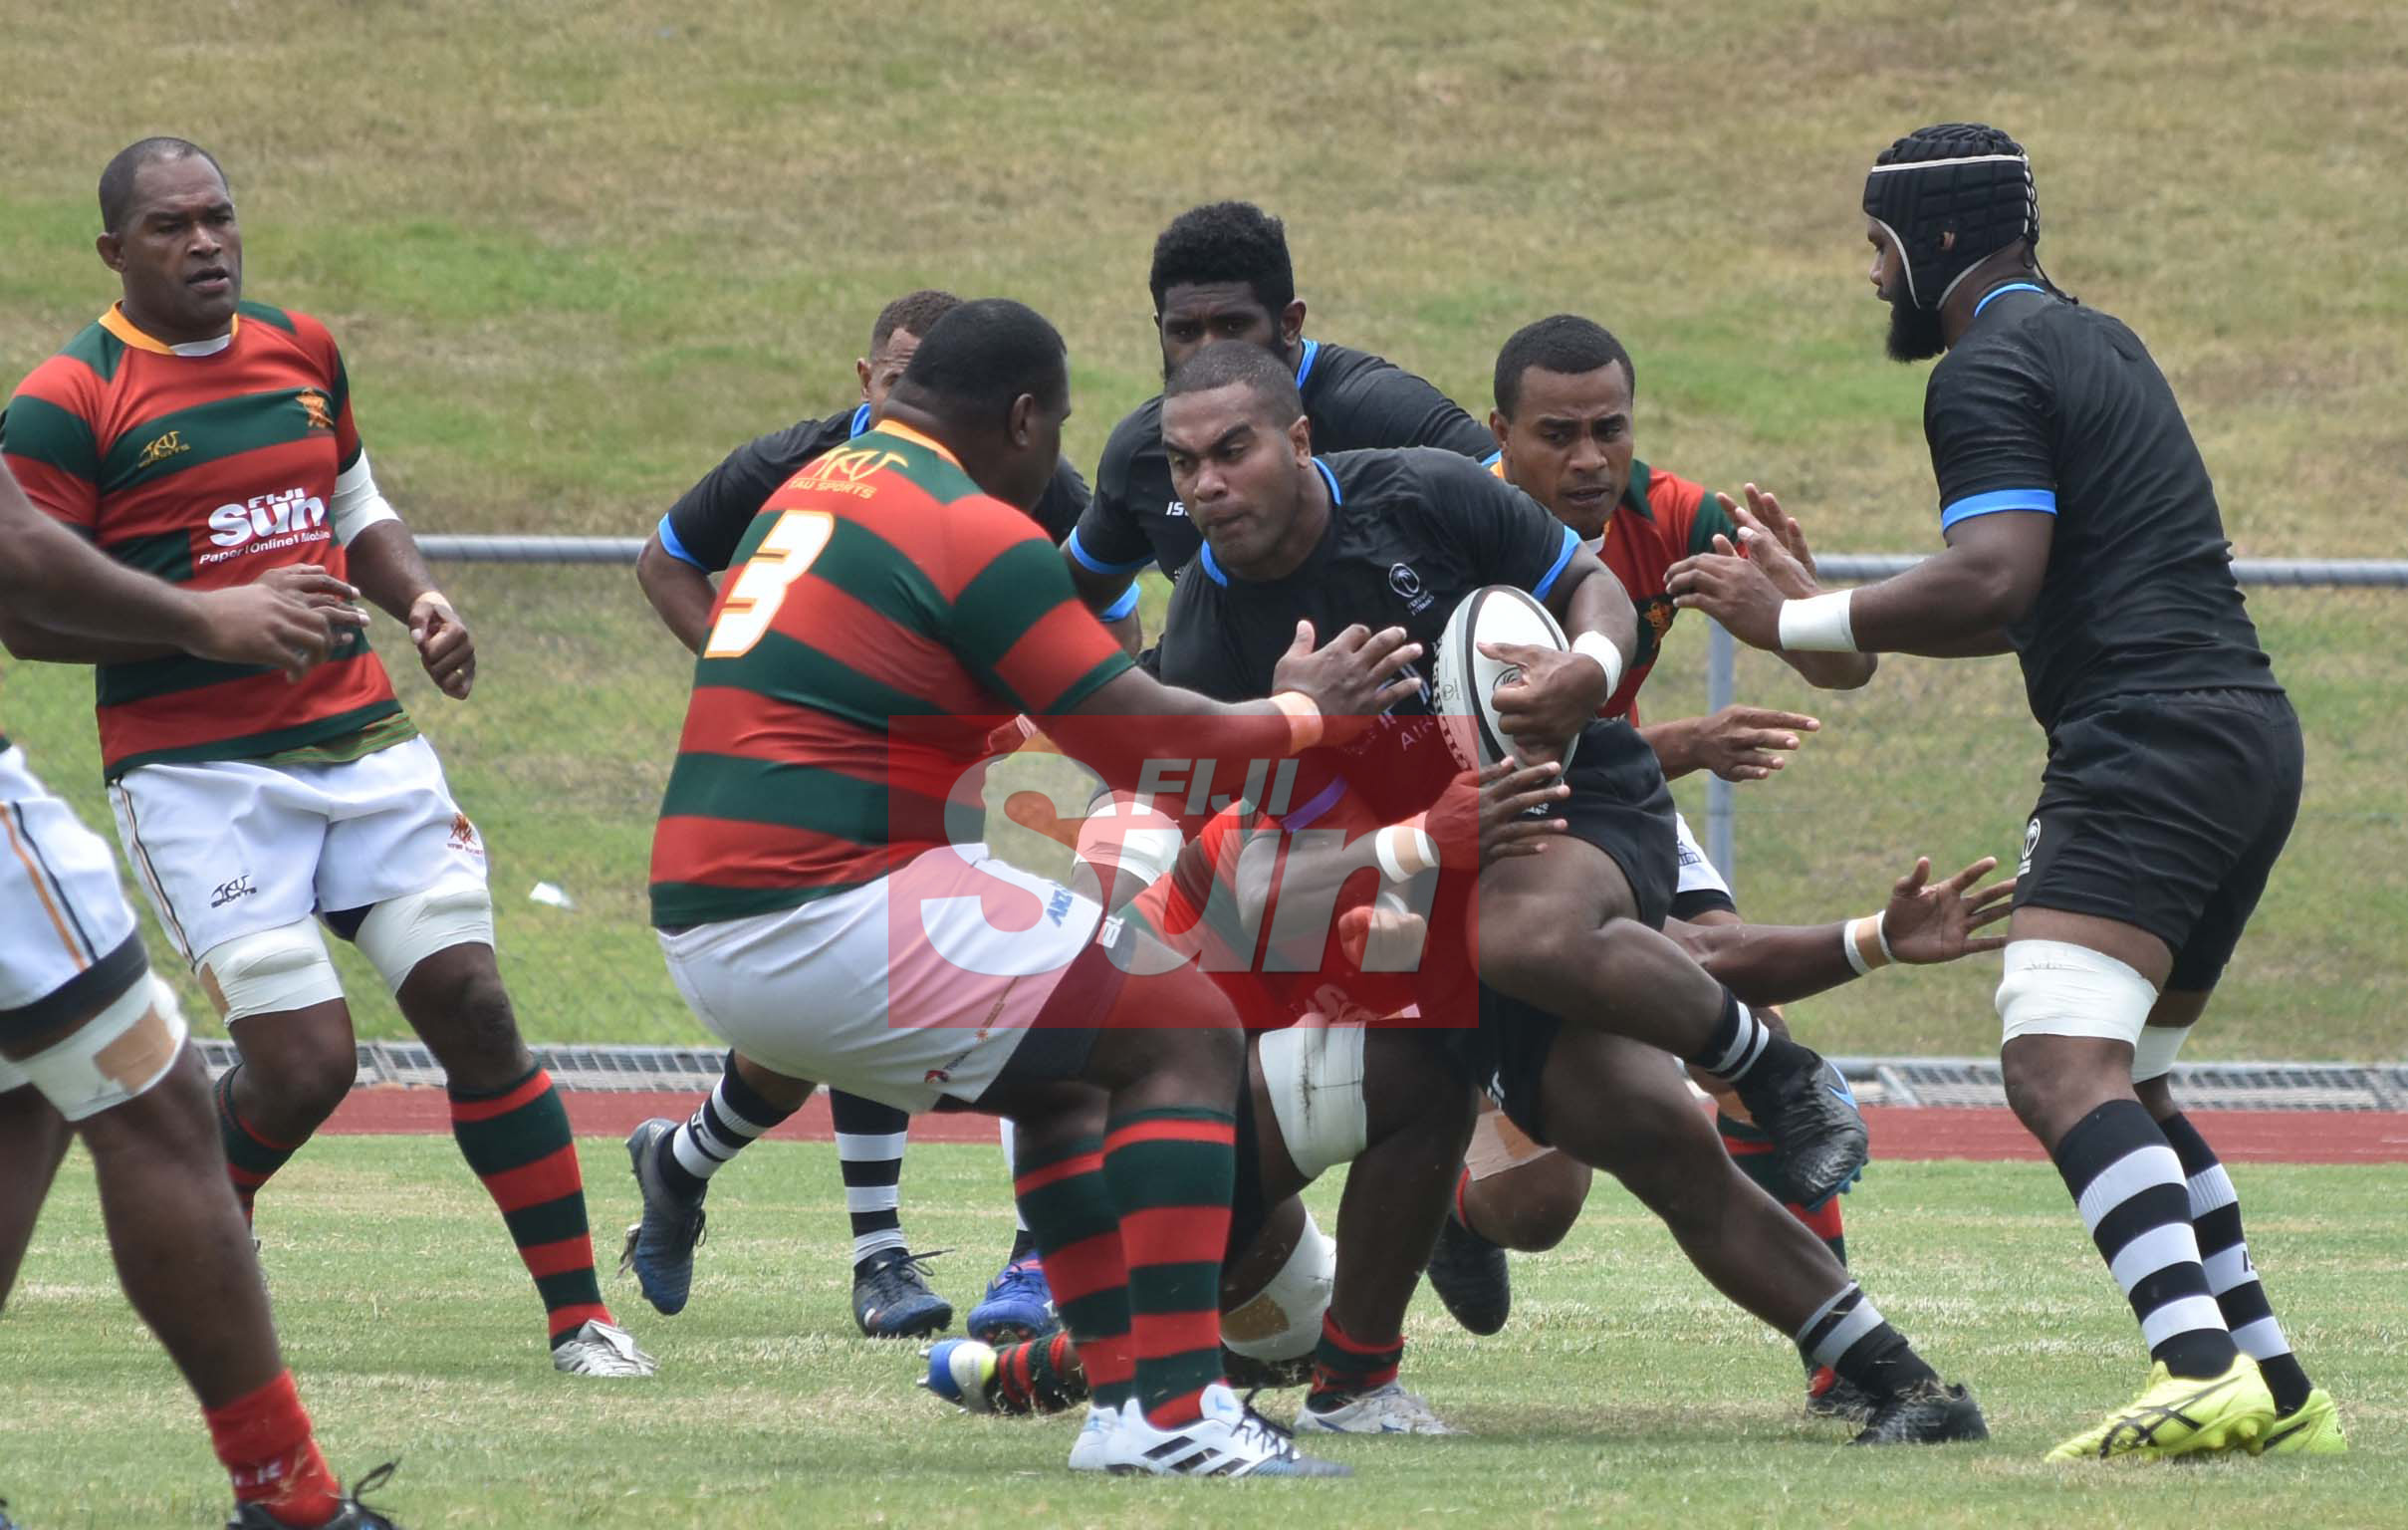 Flying Fijians Johnny Dyer on the attack against RFMF team during training at the Churchill park, Lautoka yesterday. Photo: WAISEA NASOKIA